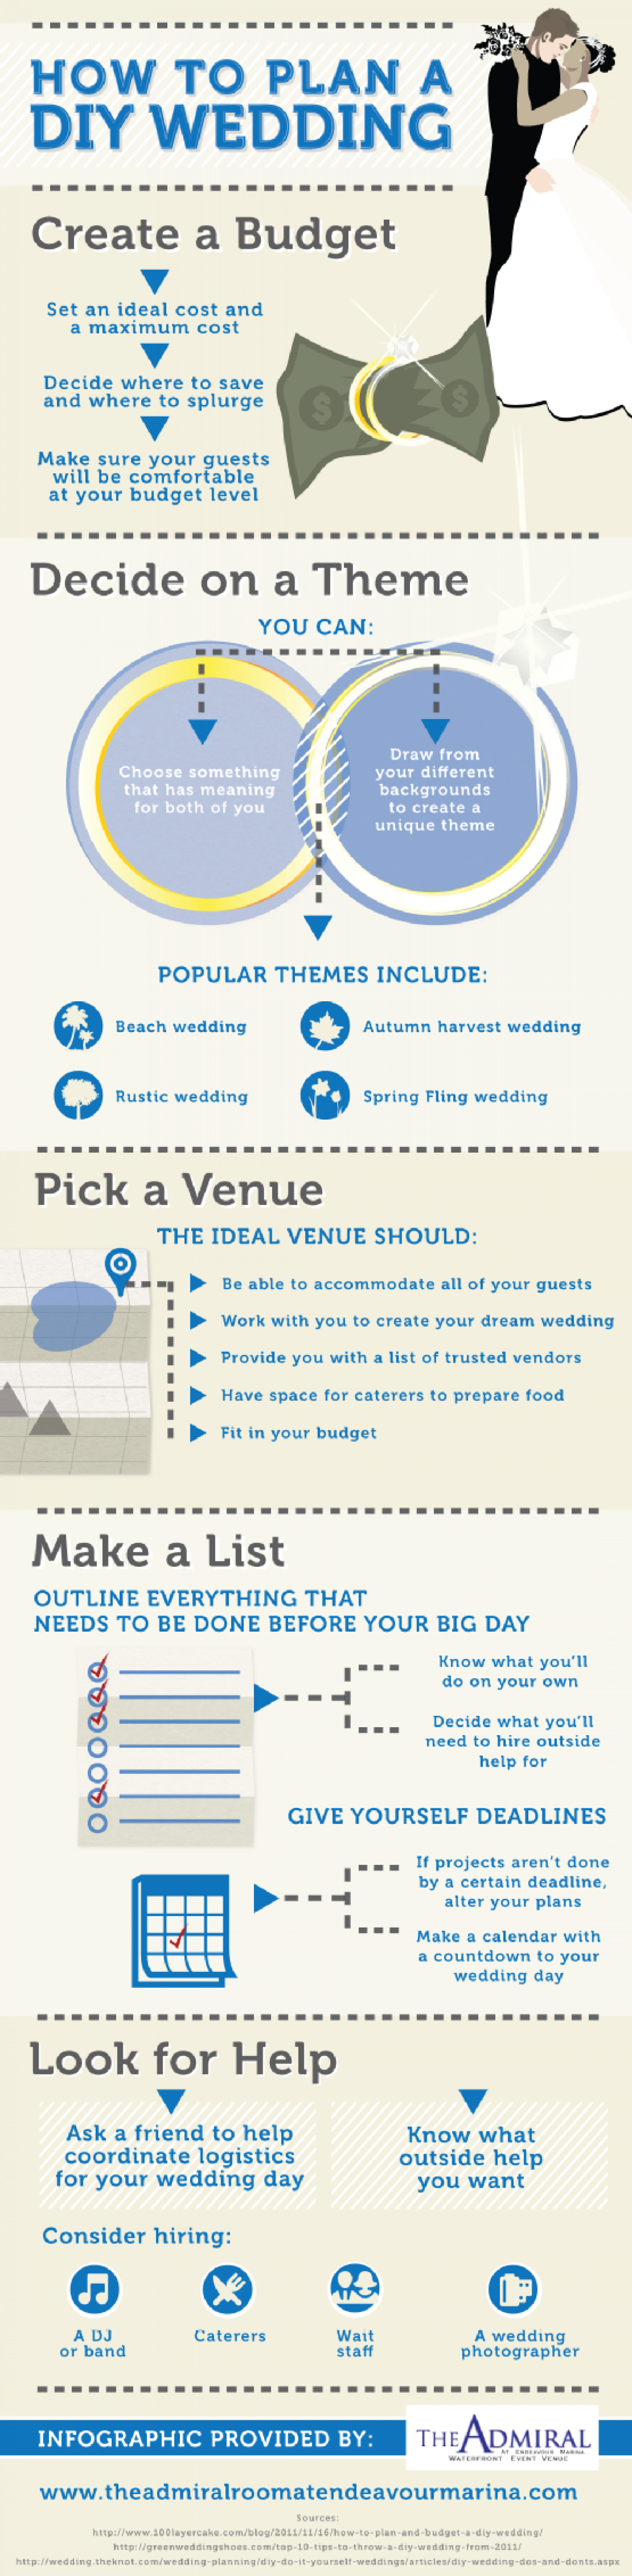 How To Plan a DIY Wedding Infographic